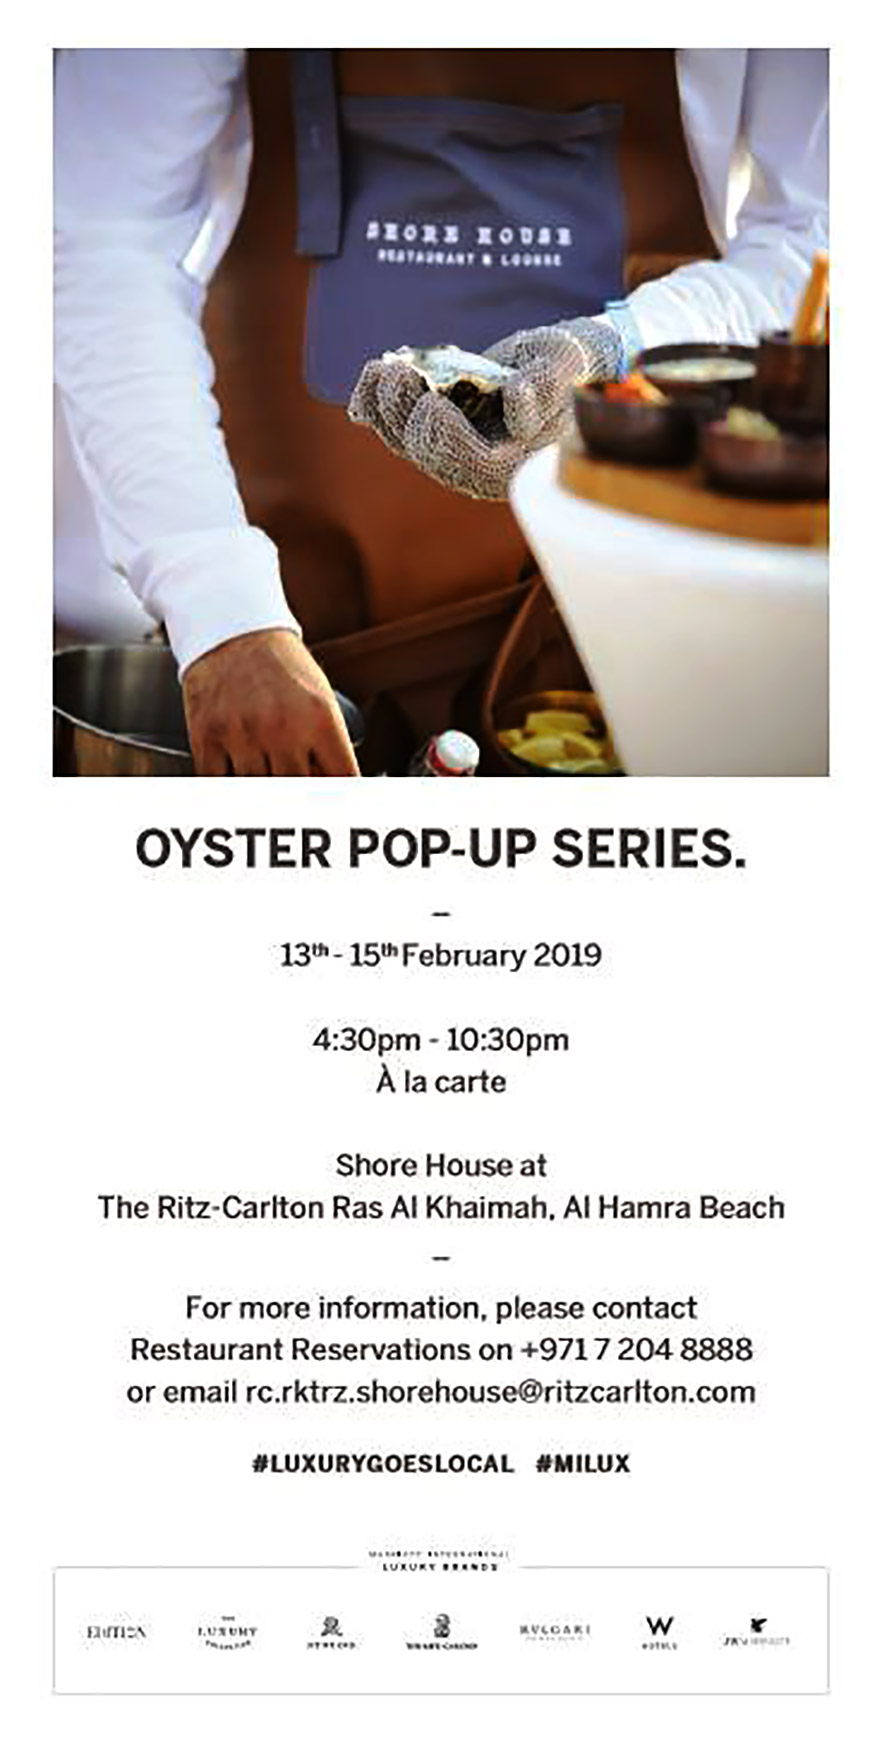 Oyster Pop-Up Series